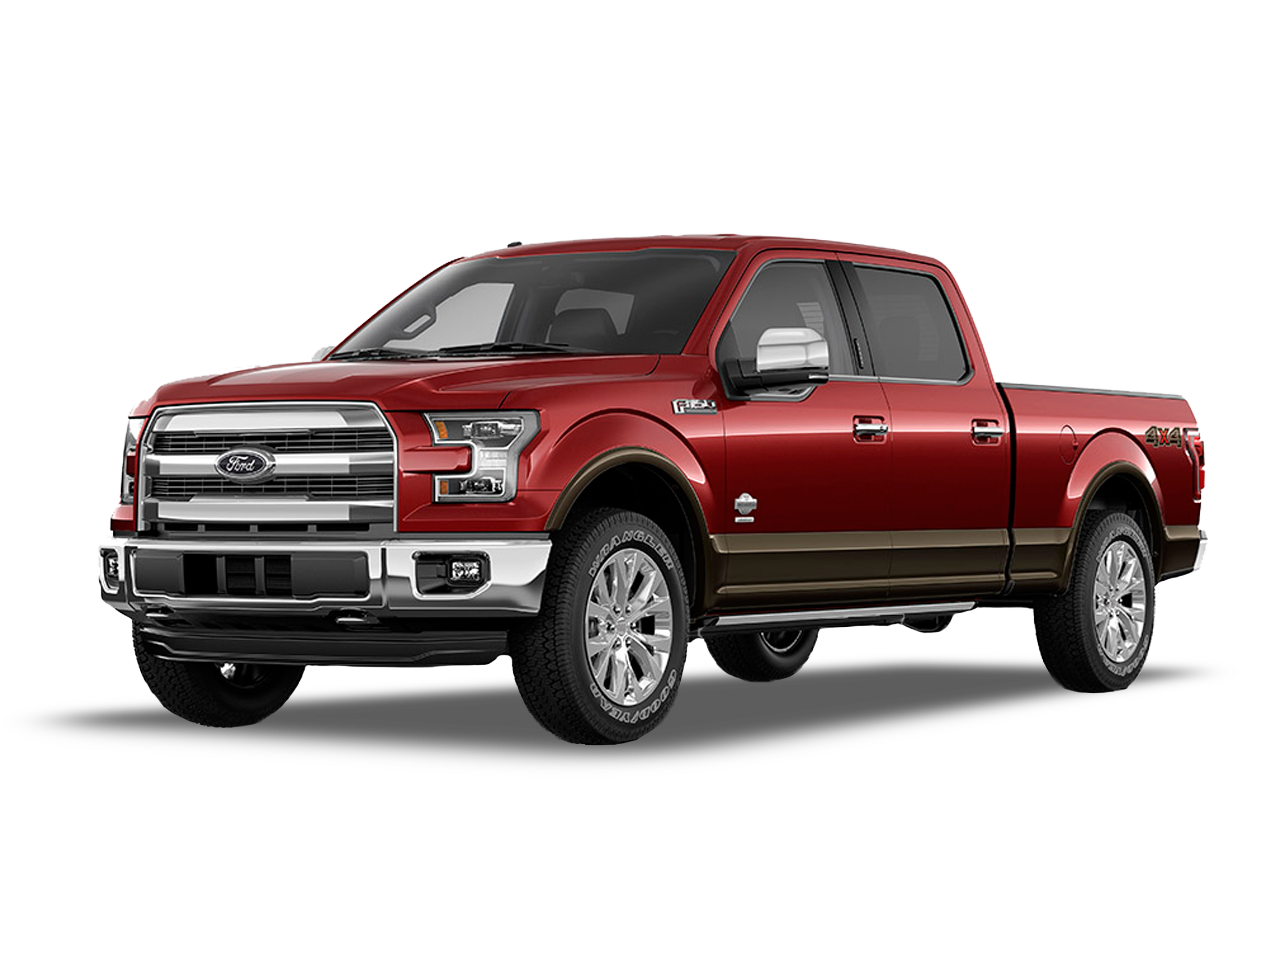 ford f 150 xlt towing capacity 2018 2019 2020 ford cars. Black Bedroom Furniture Sets. Home Design Ideas